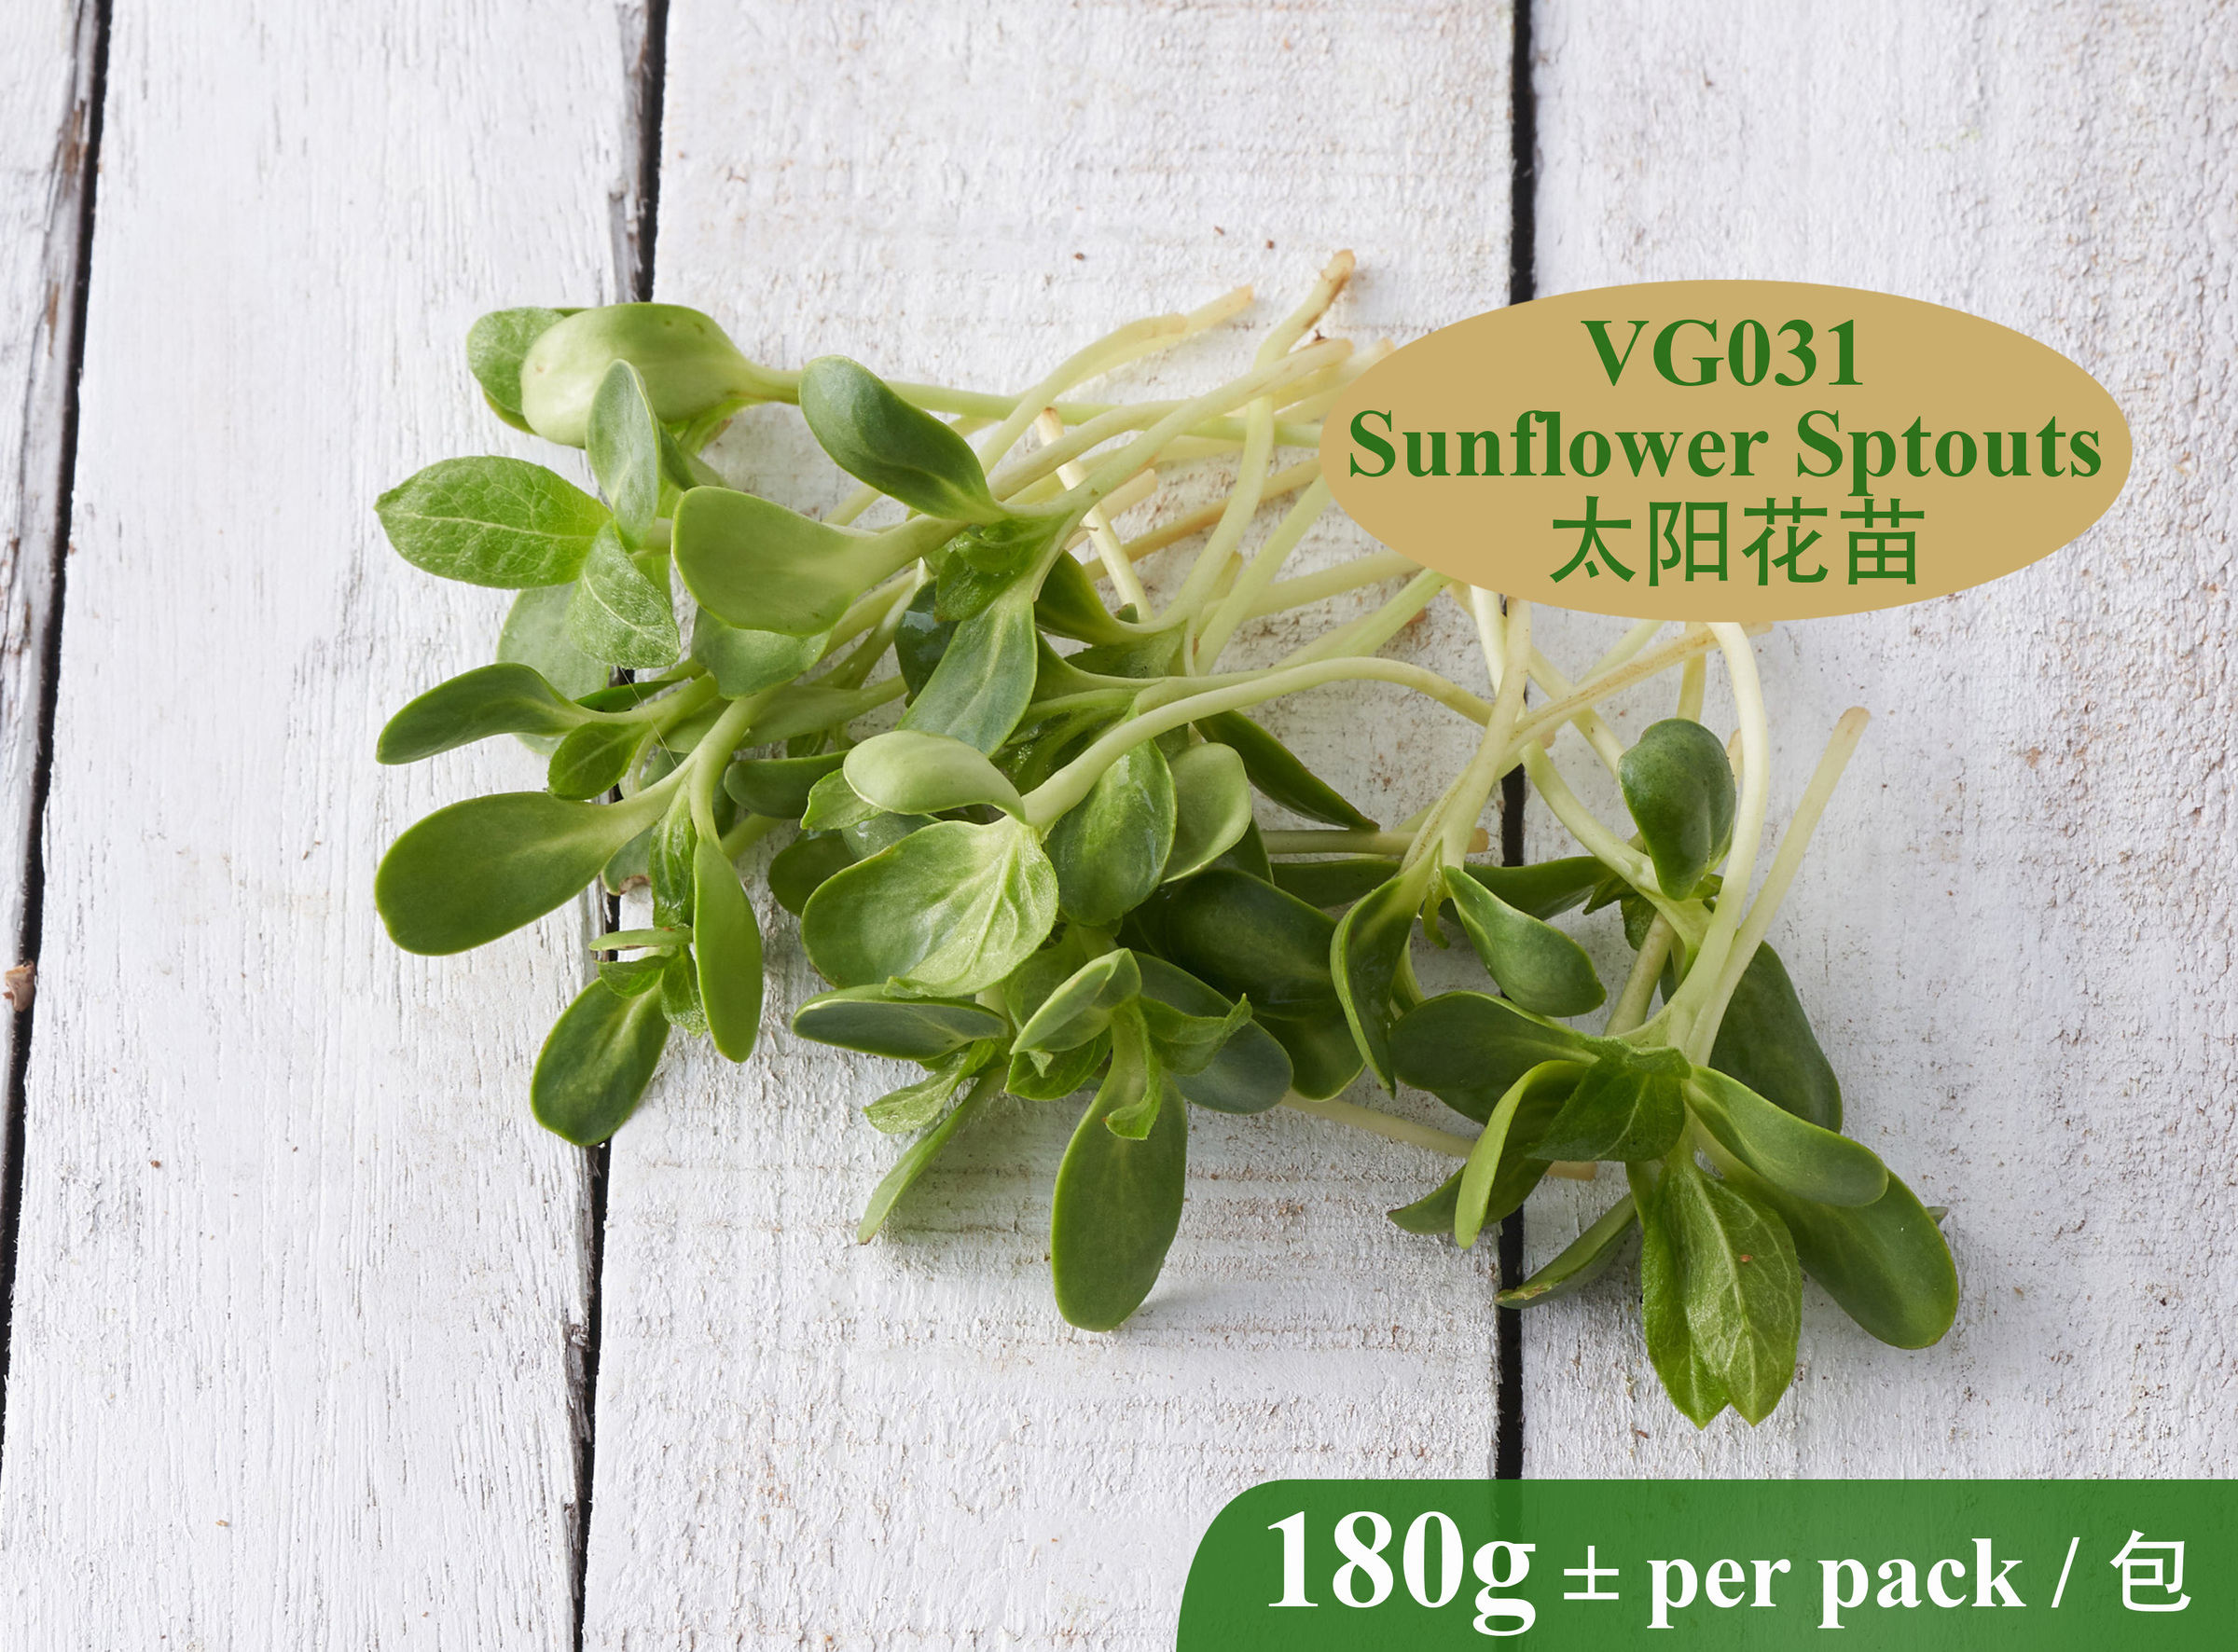 VG031 Sunflower Sprouts-RM4.00 per 180g+.jpg